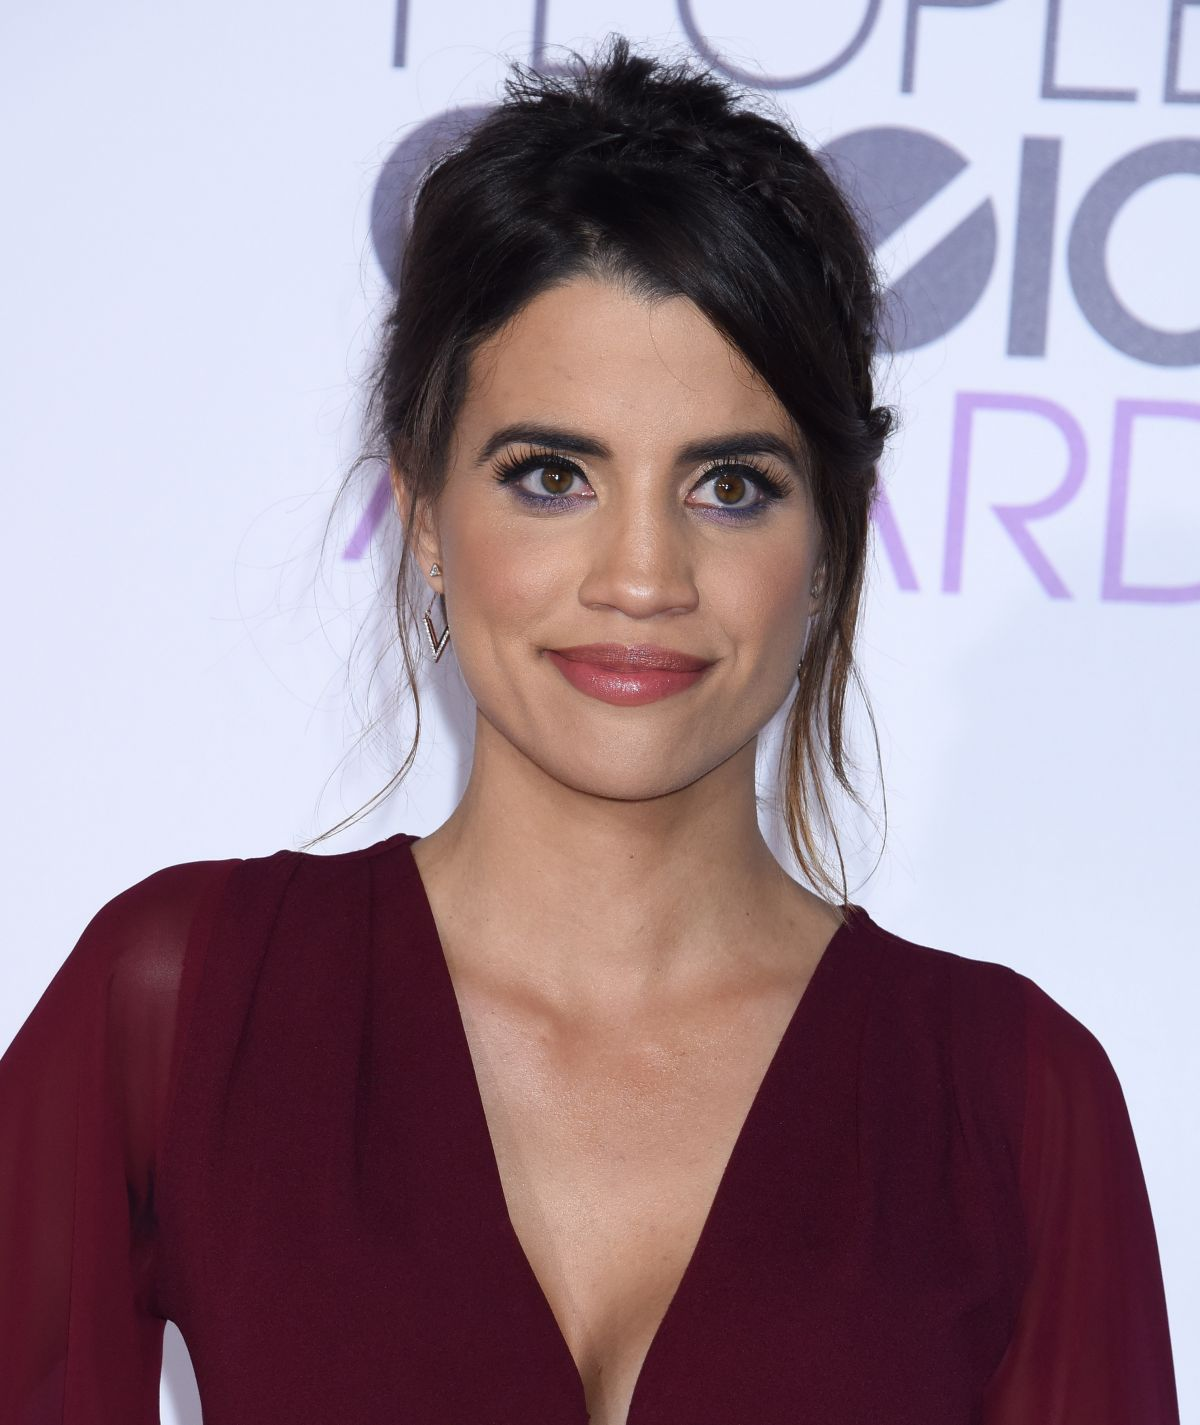 The 33-year old daughter of father (?) and mother(?), 167 cm tall Natalie Morales in 2018 photo